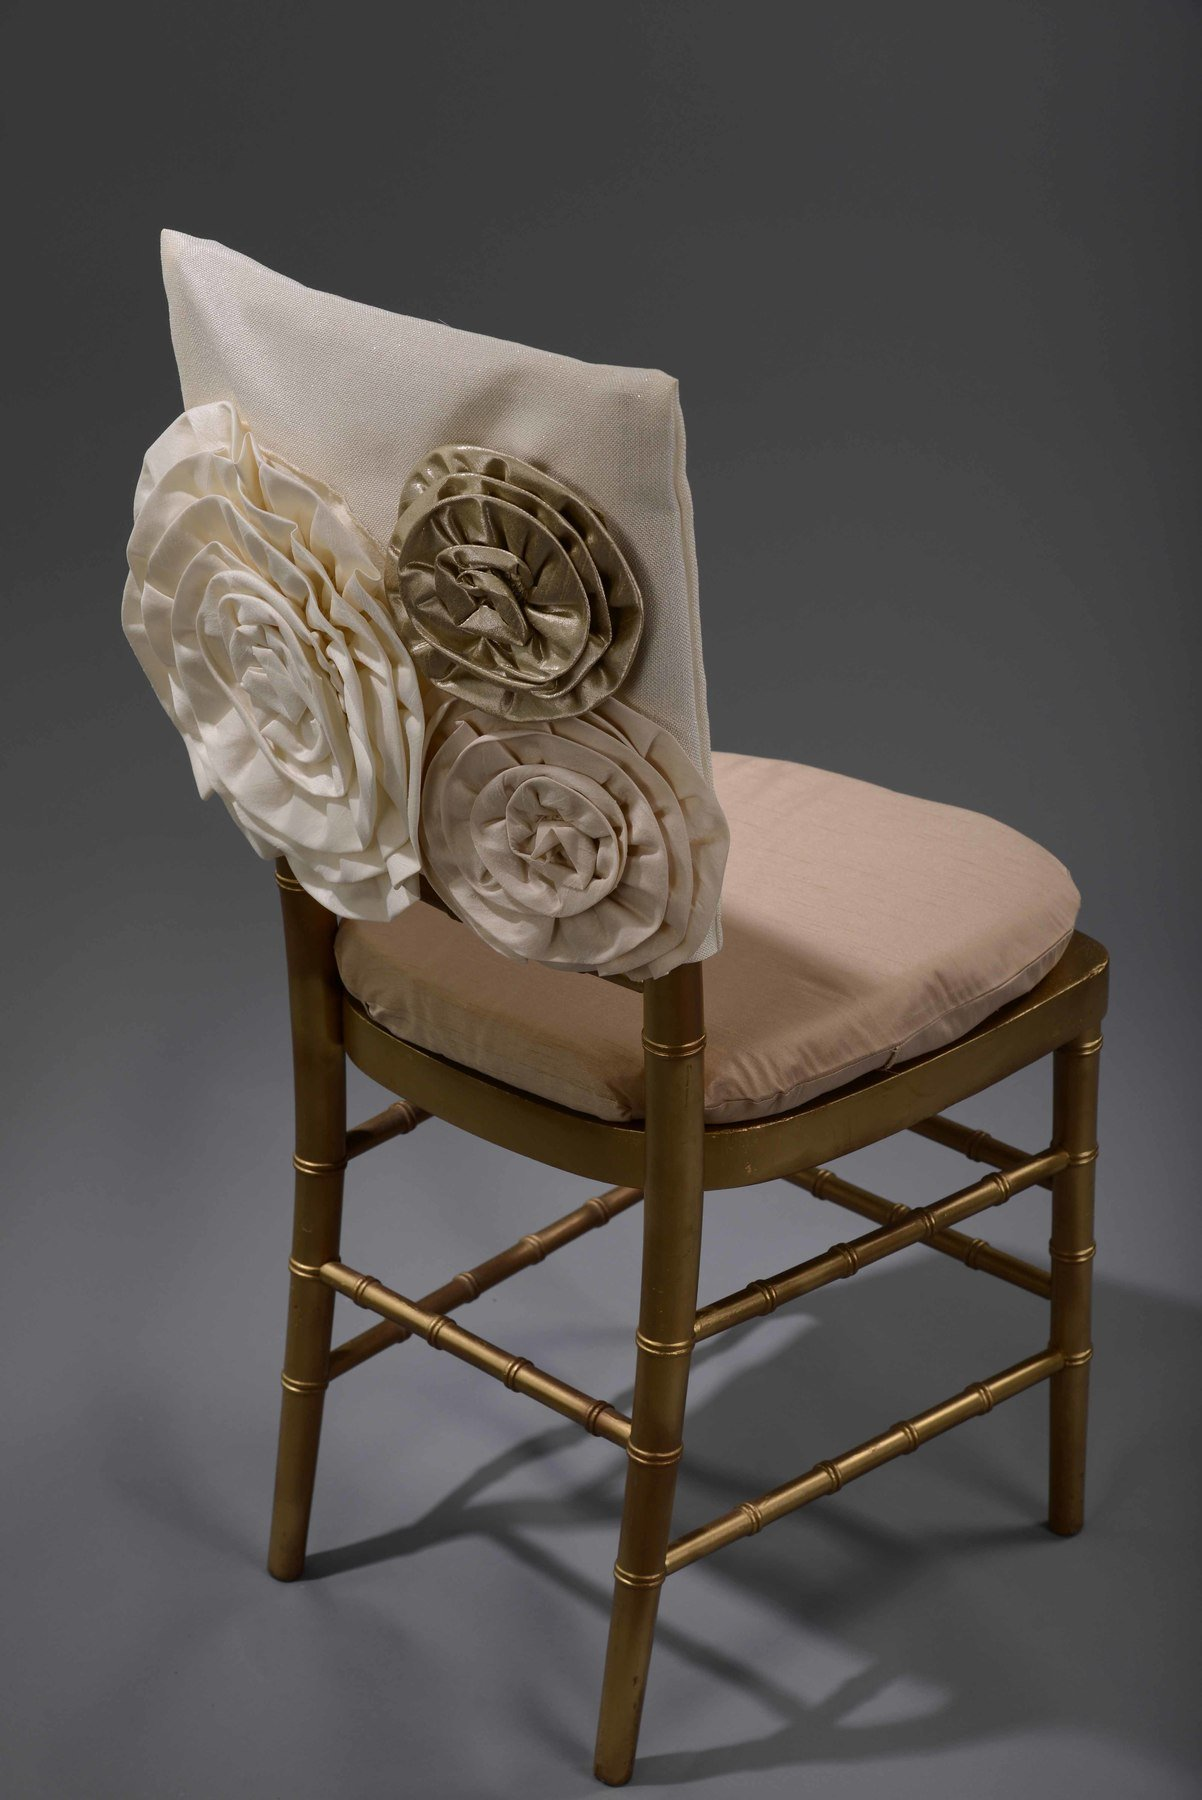 chair cover hire preston steelcase leap with headrest rose cap bailey collection nüage designs